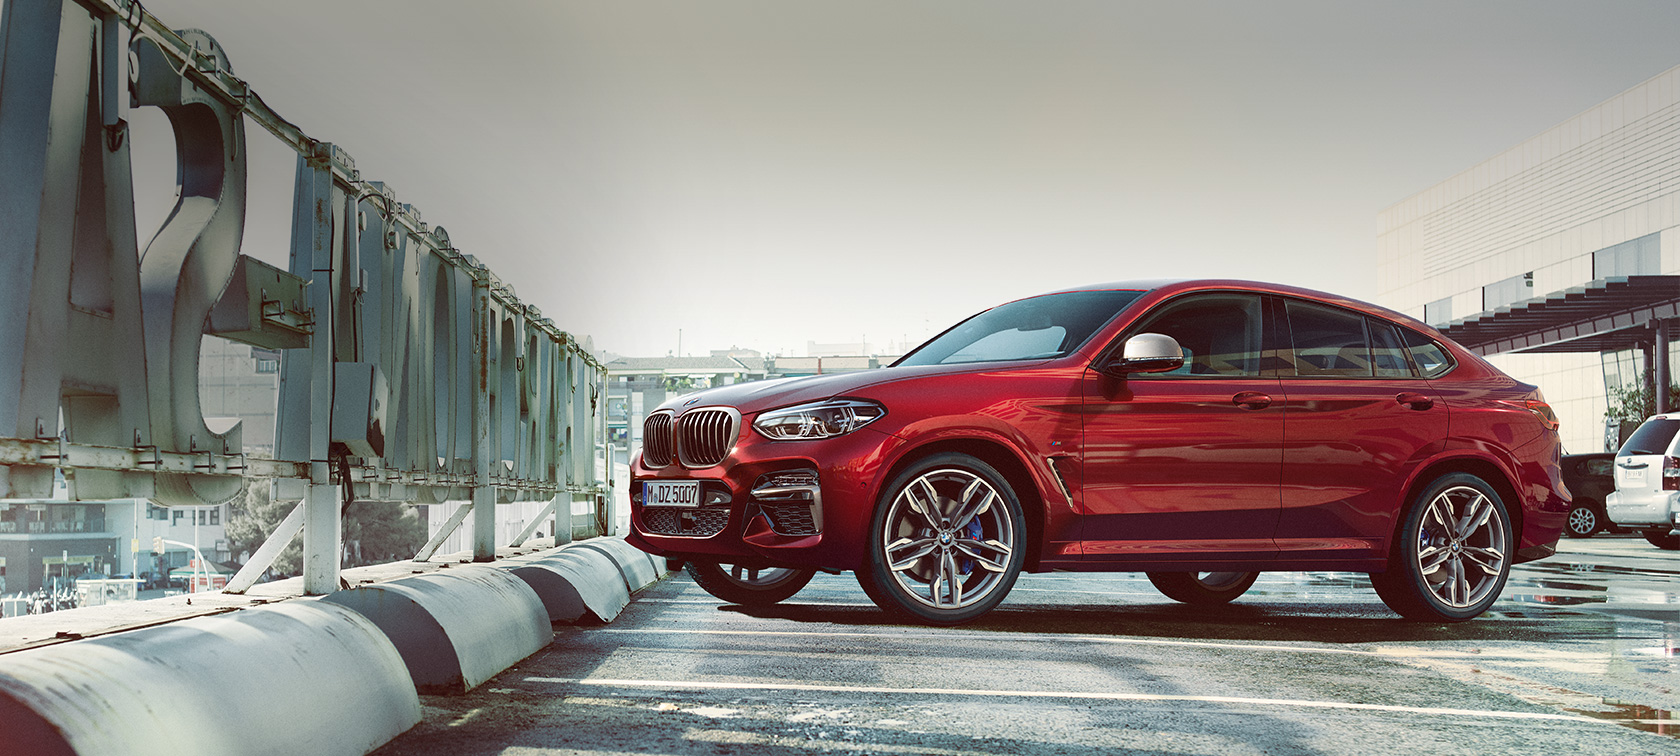 BMW X4 M40i 2018 Flamenco Red efecto brillante, vista lateral en estacionamiento